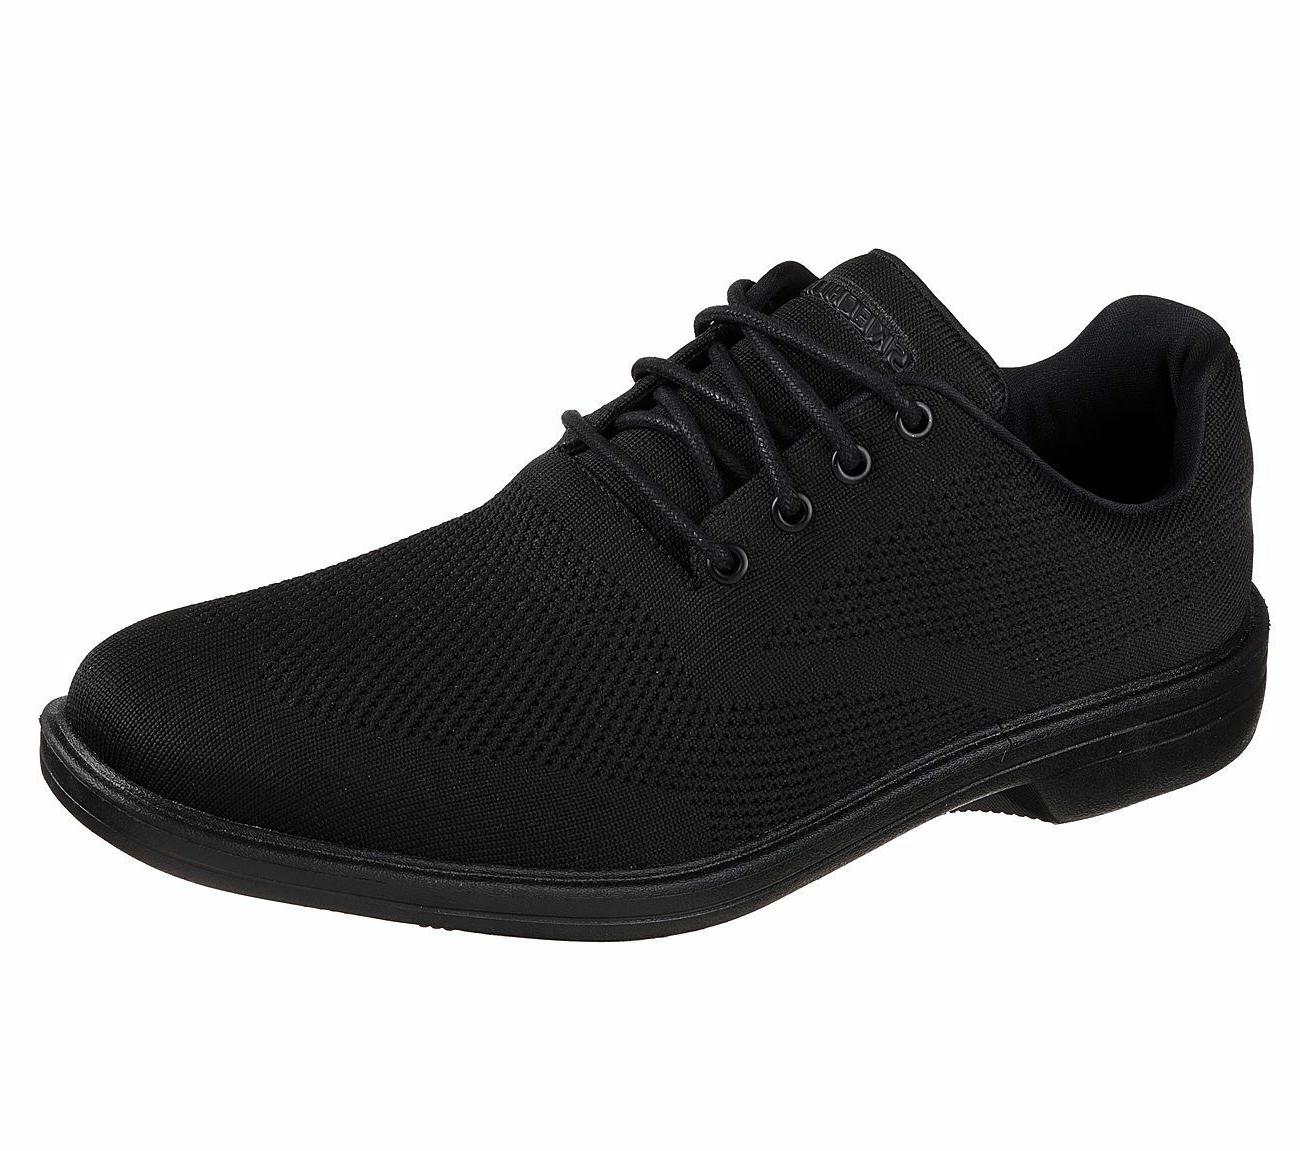 65293 extra wide fit black shoes men